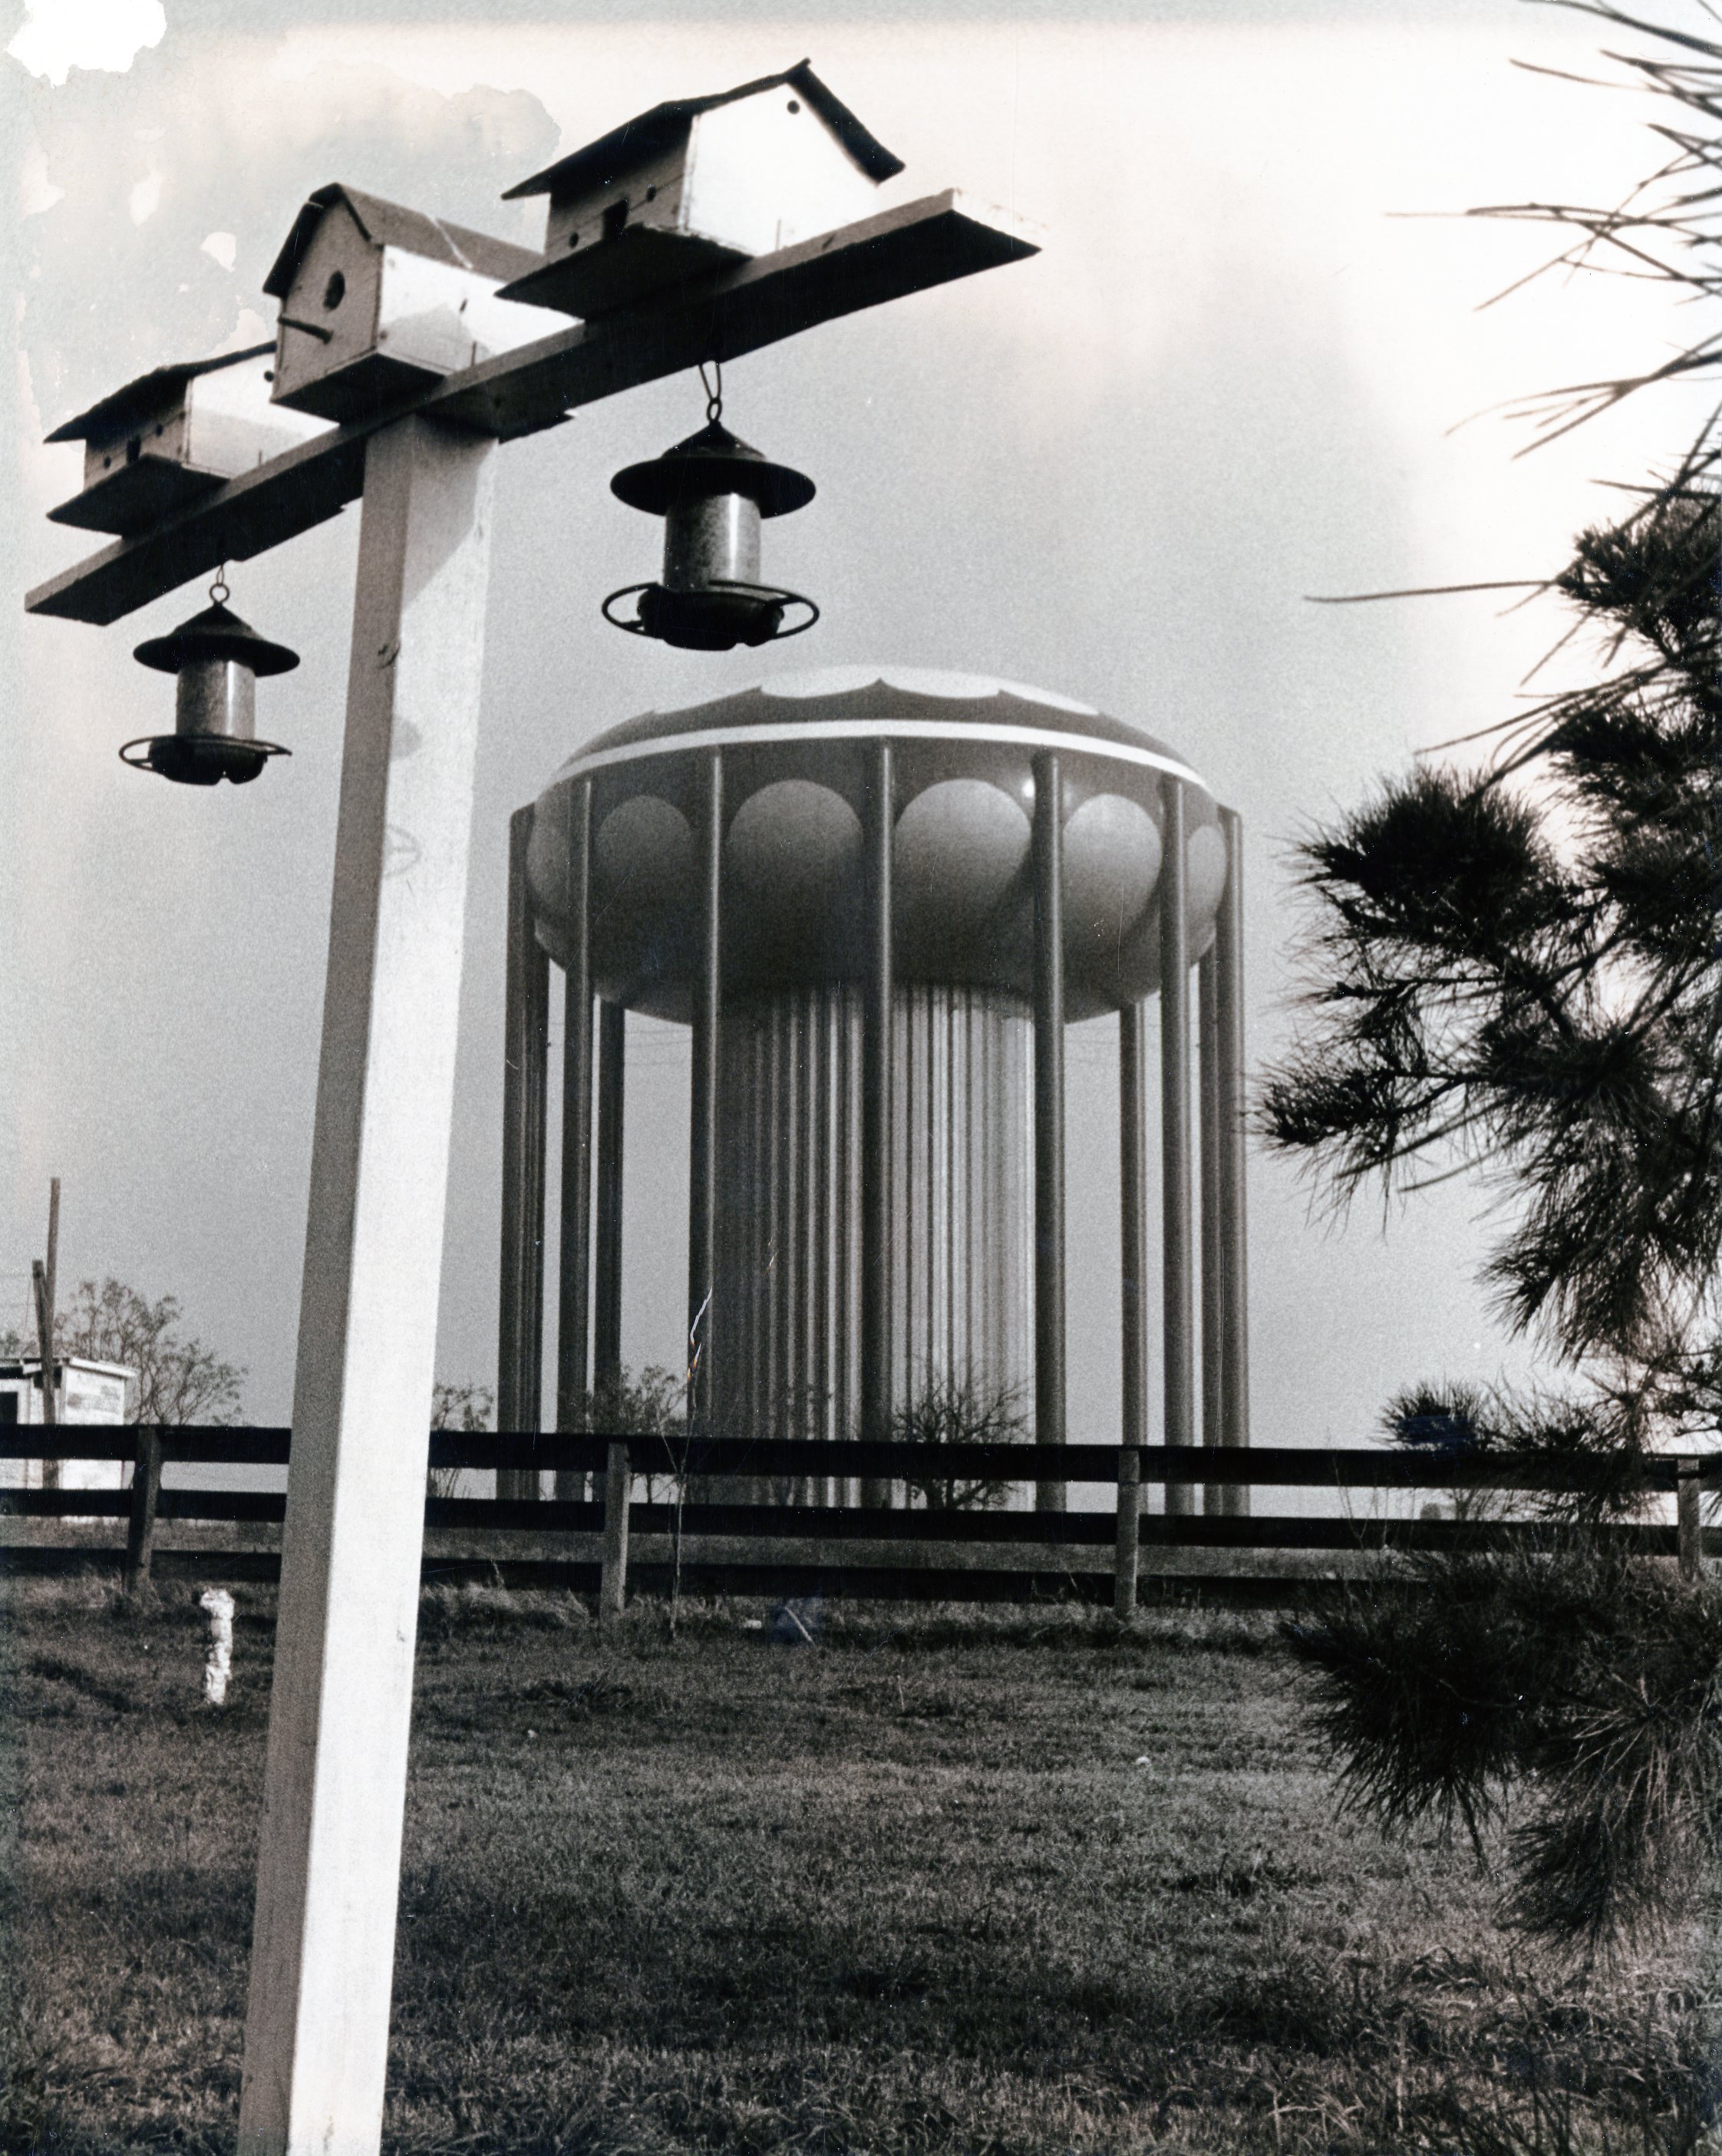 Water Tower, Photograph